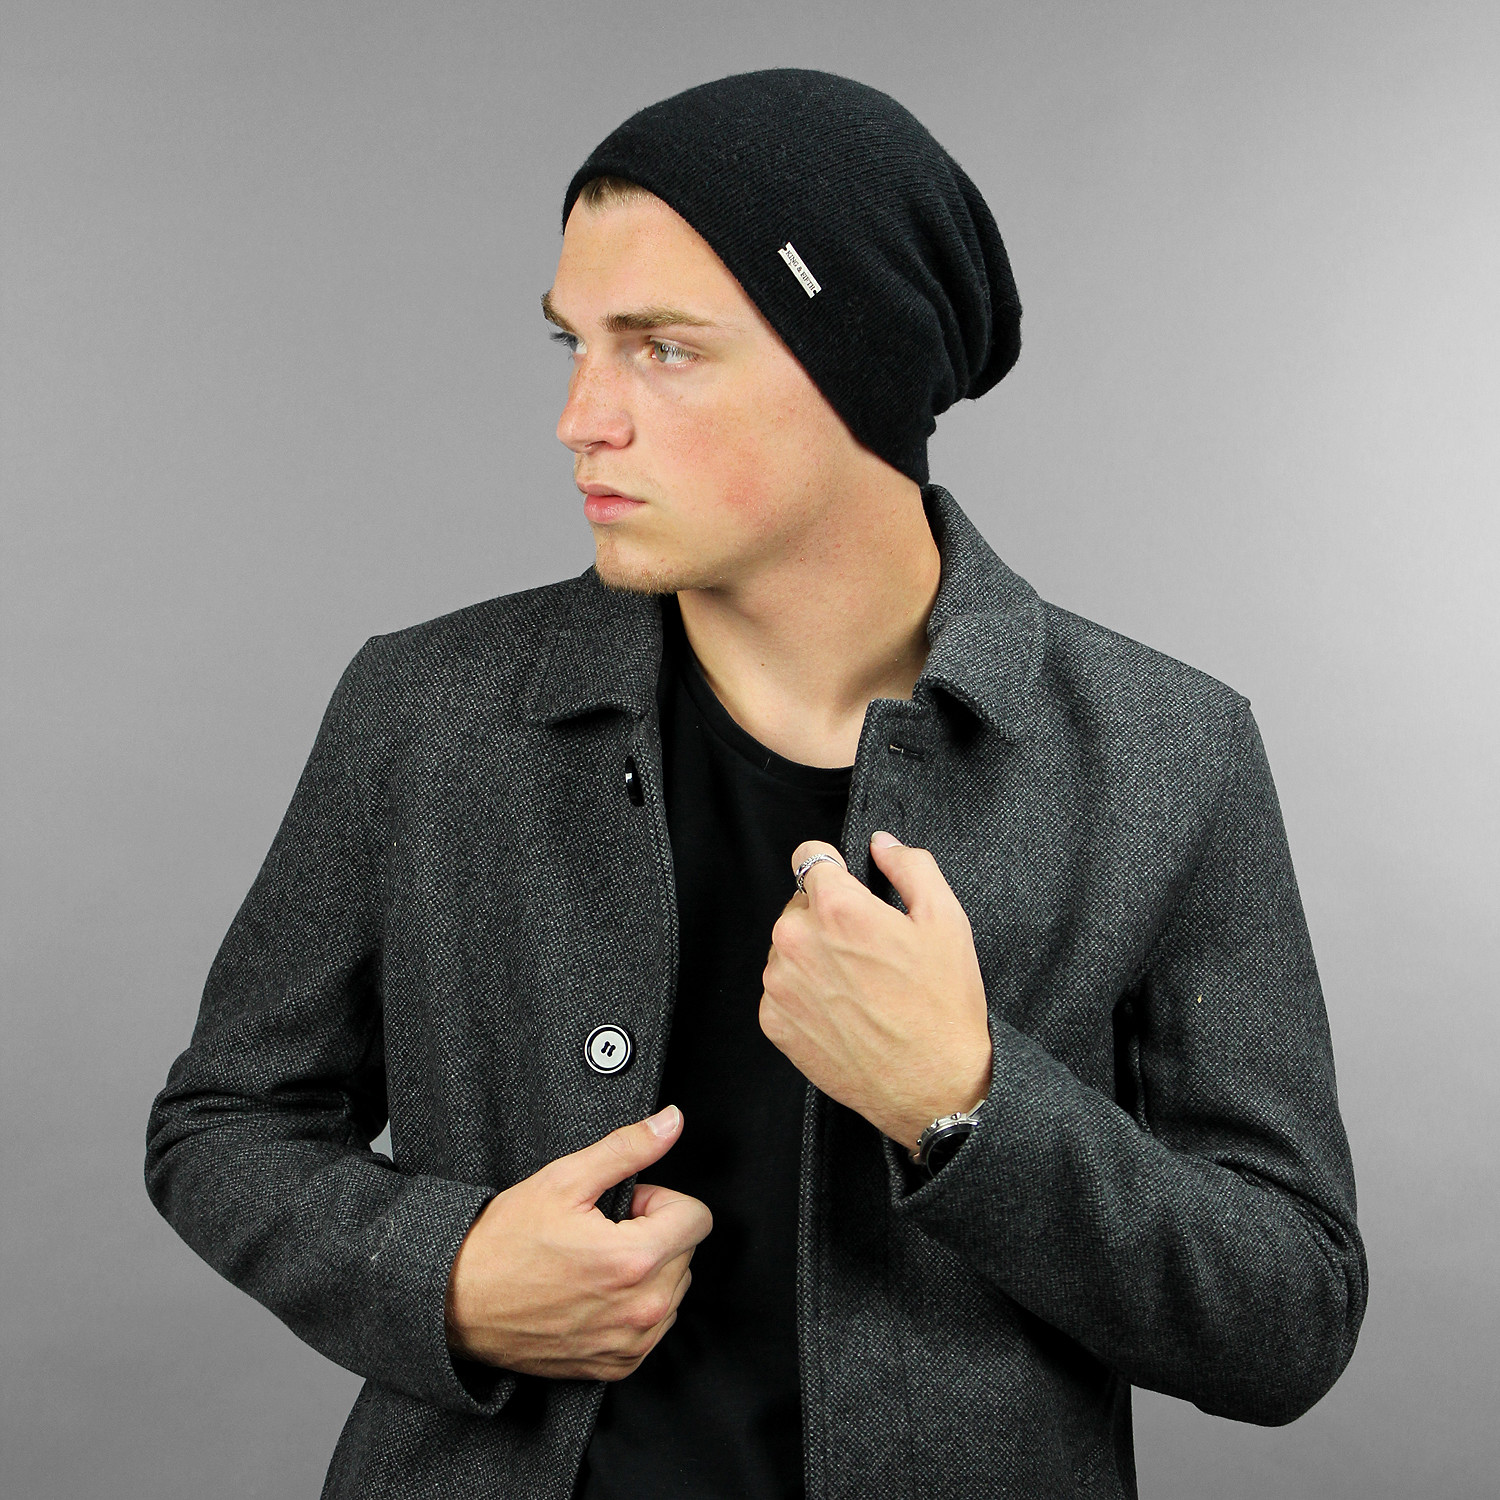 a6e1e229f The Murphy Cashmere Beanie // Black - King & Fifth - Touch of Modern